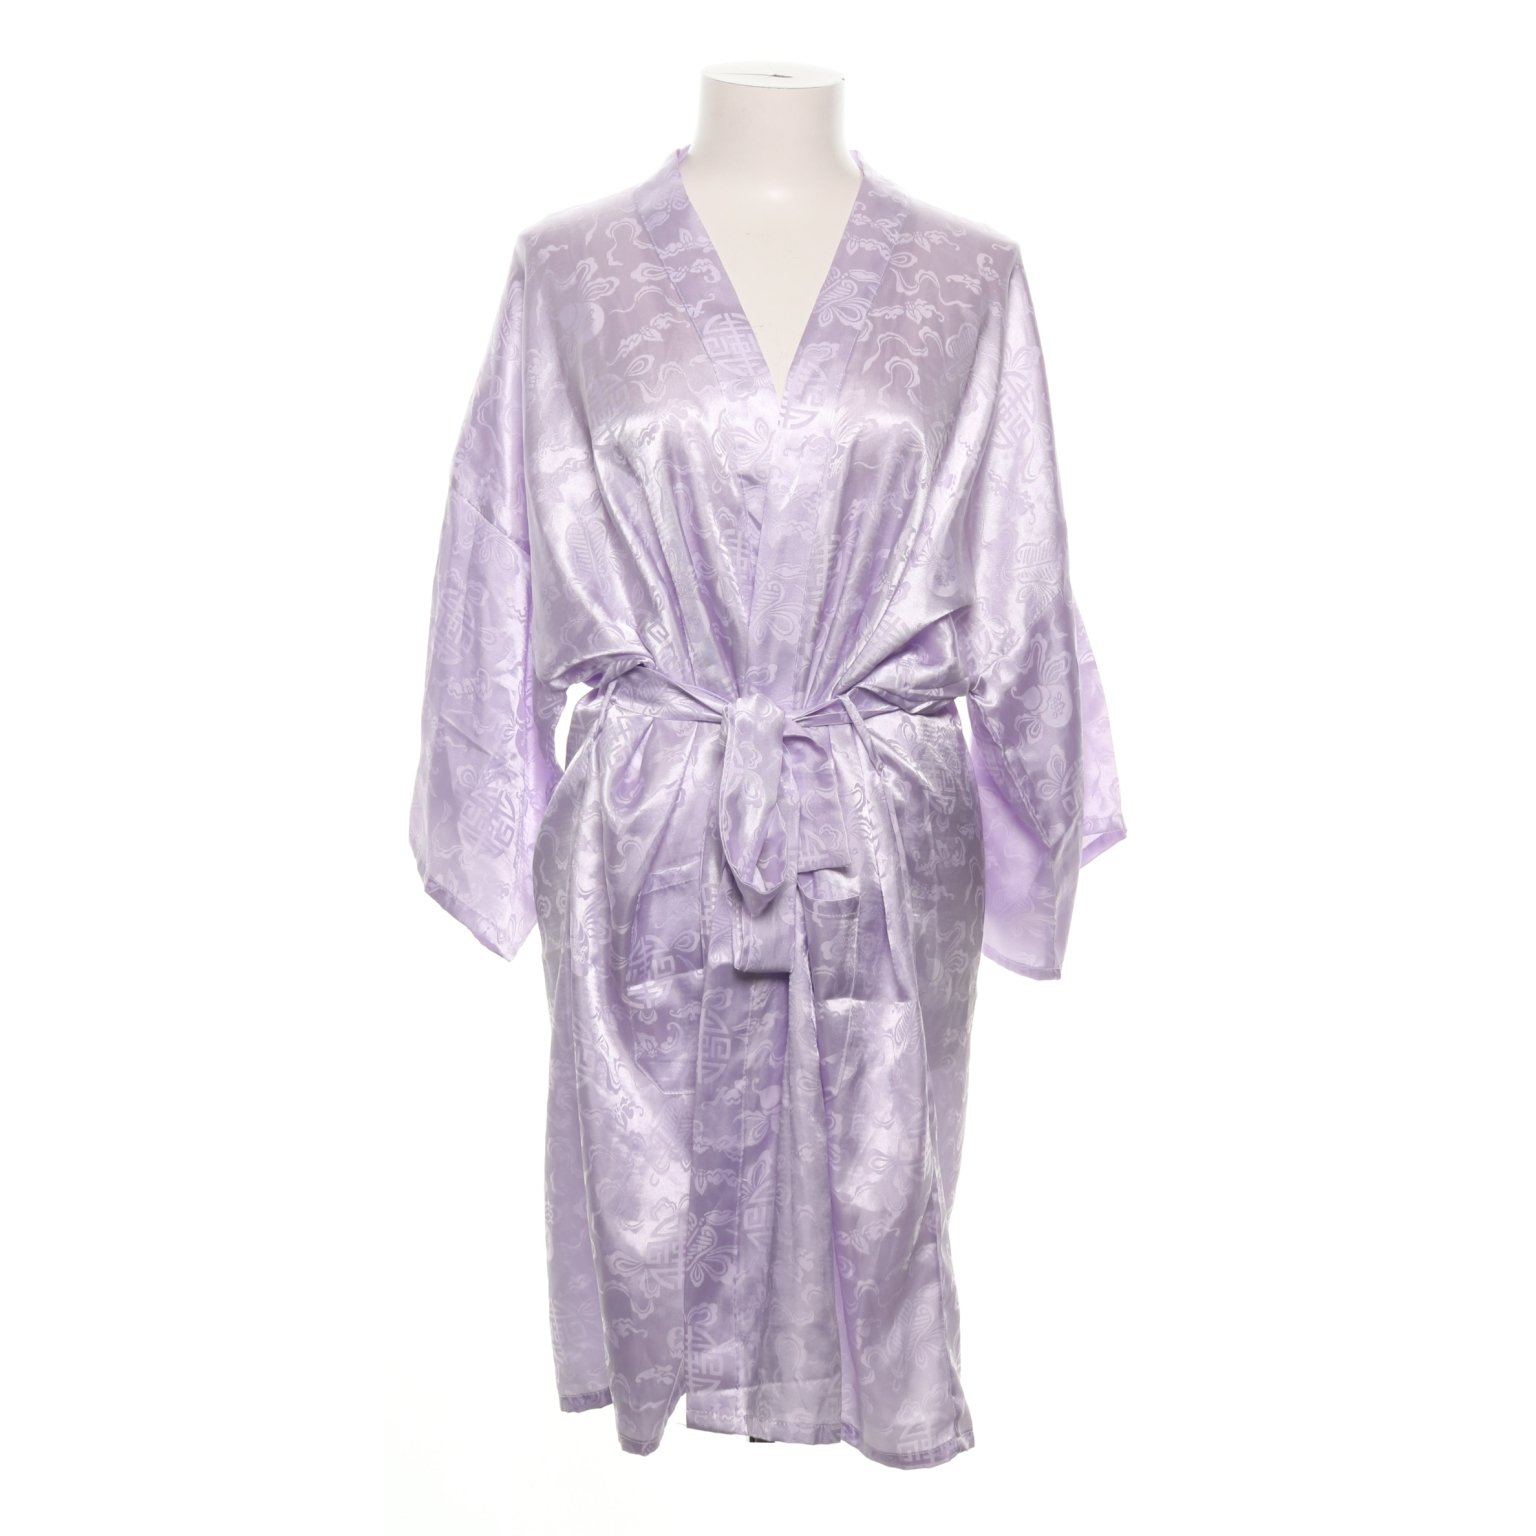 Eastern Collection, Kimono, Strl: M, Lila